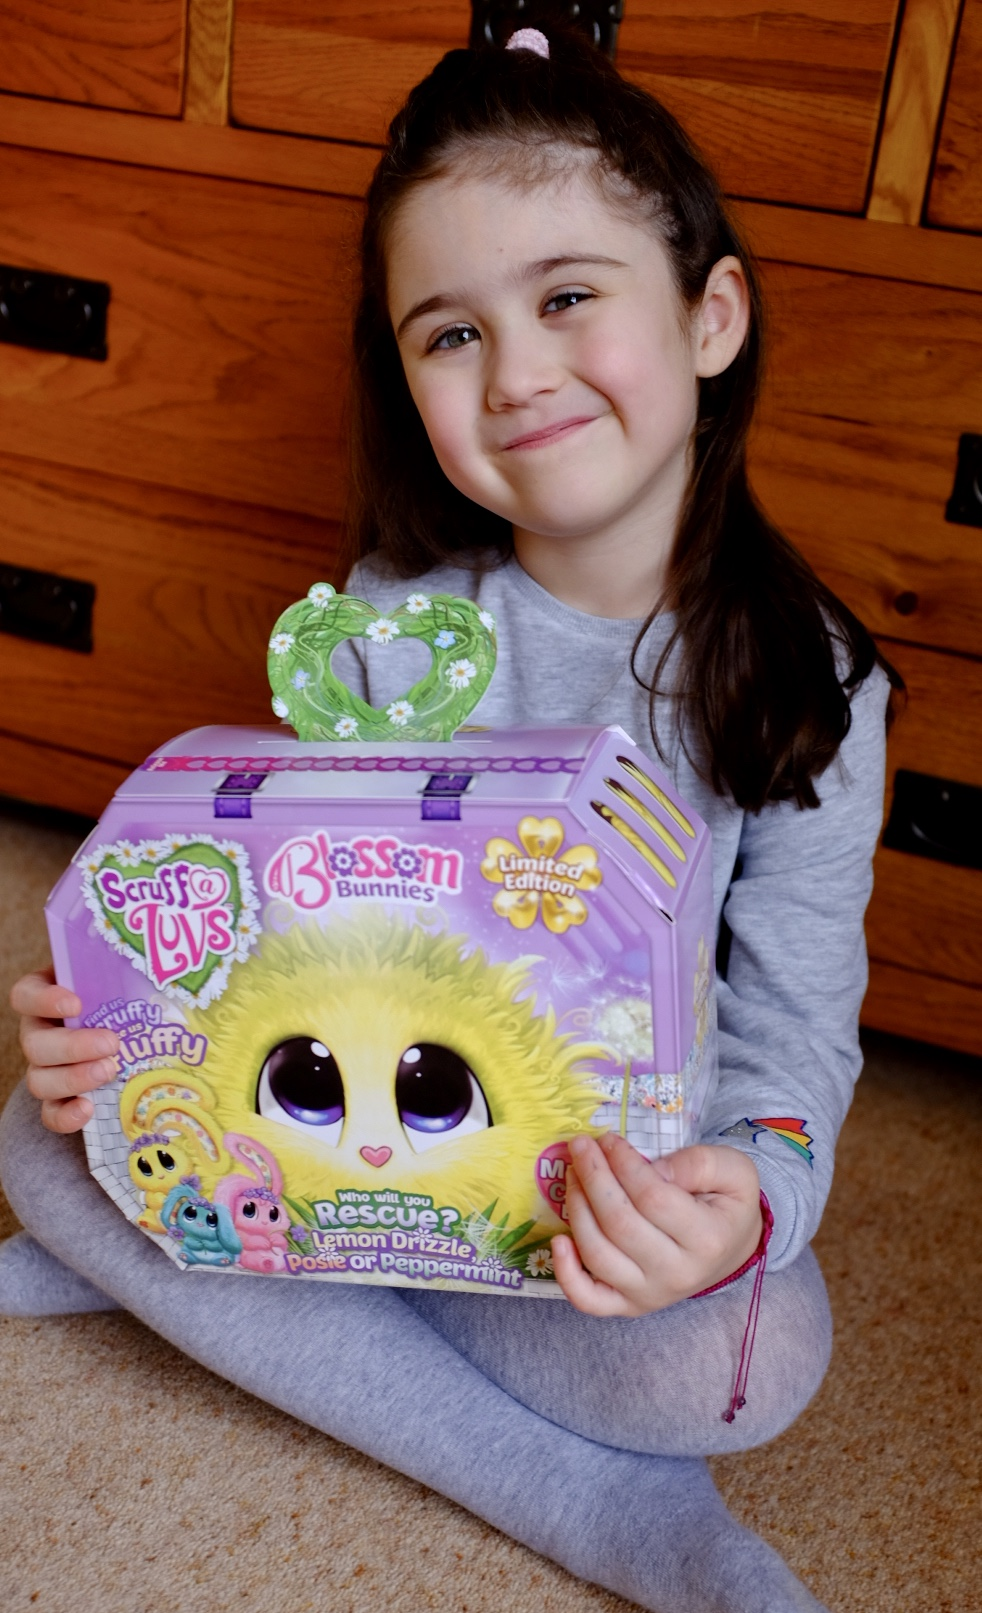 girl with Blossom Bunnies Scruff a Luvs the box